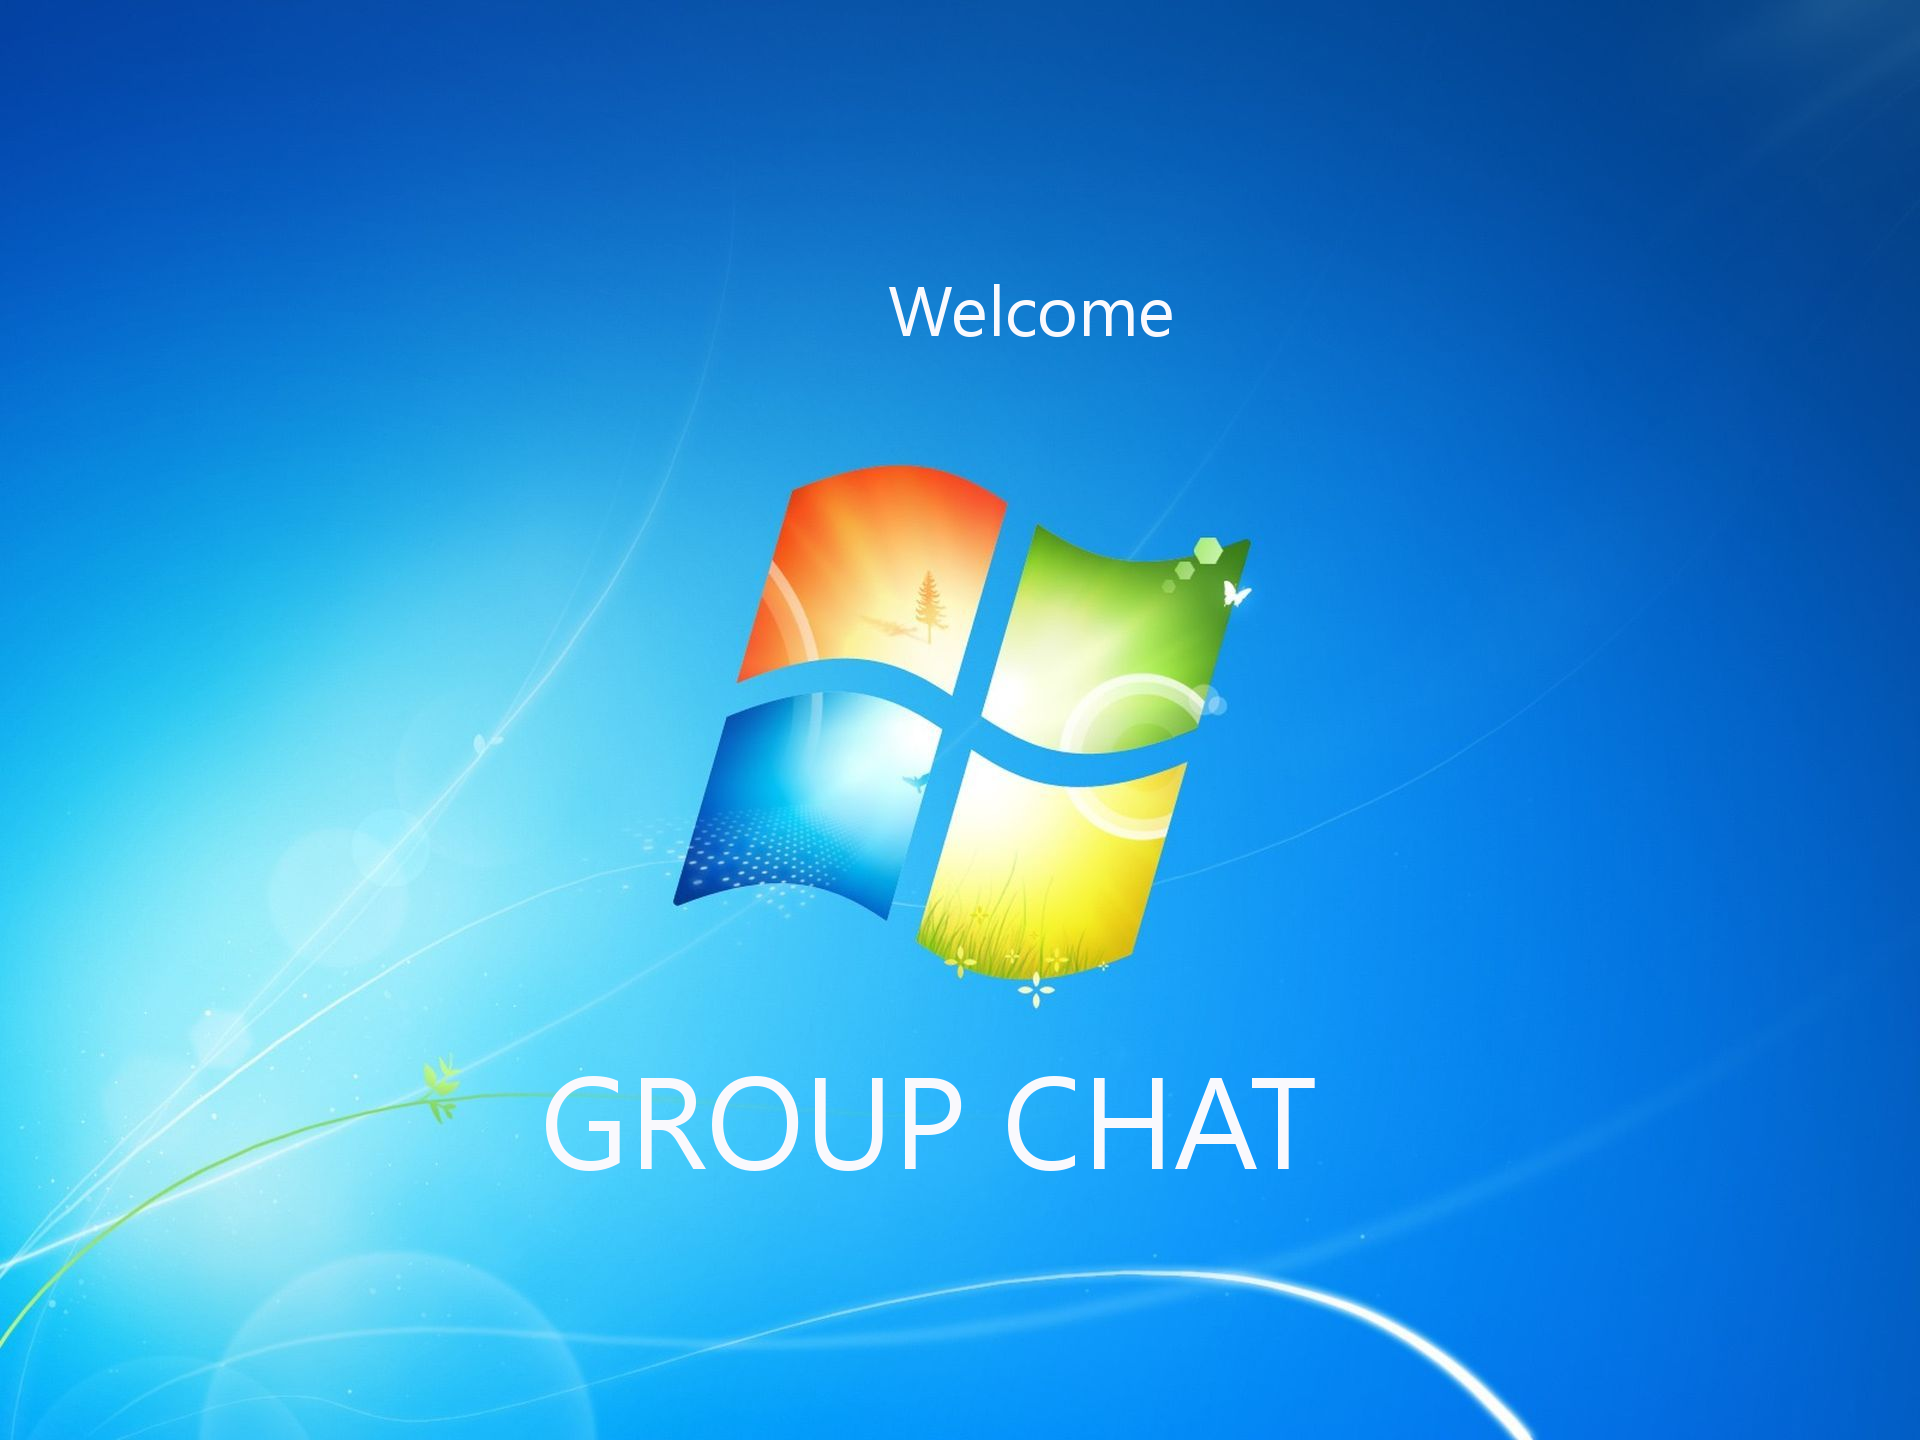 Welcome to the group chat by PeterRollar